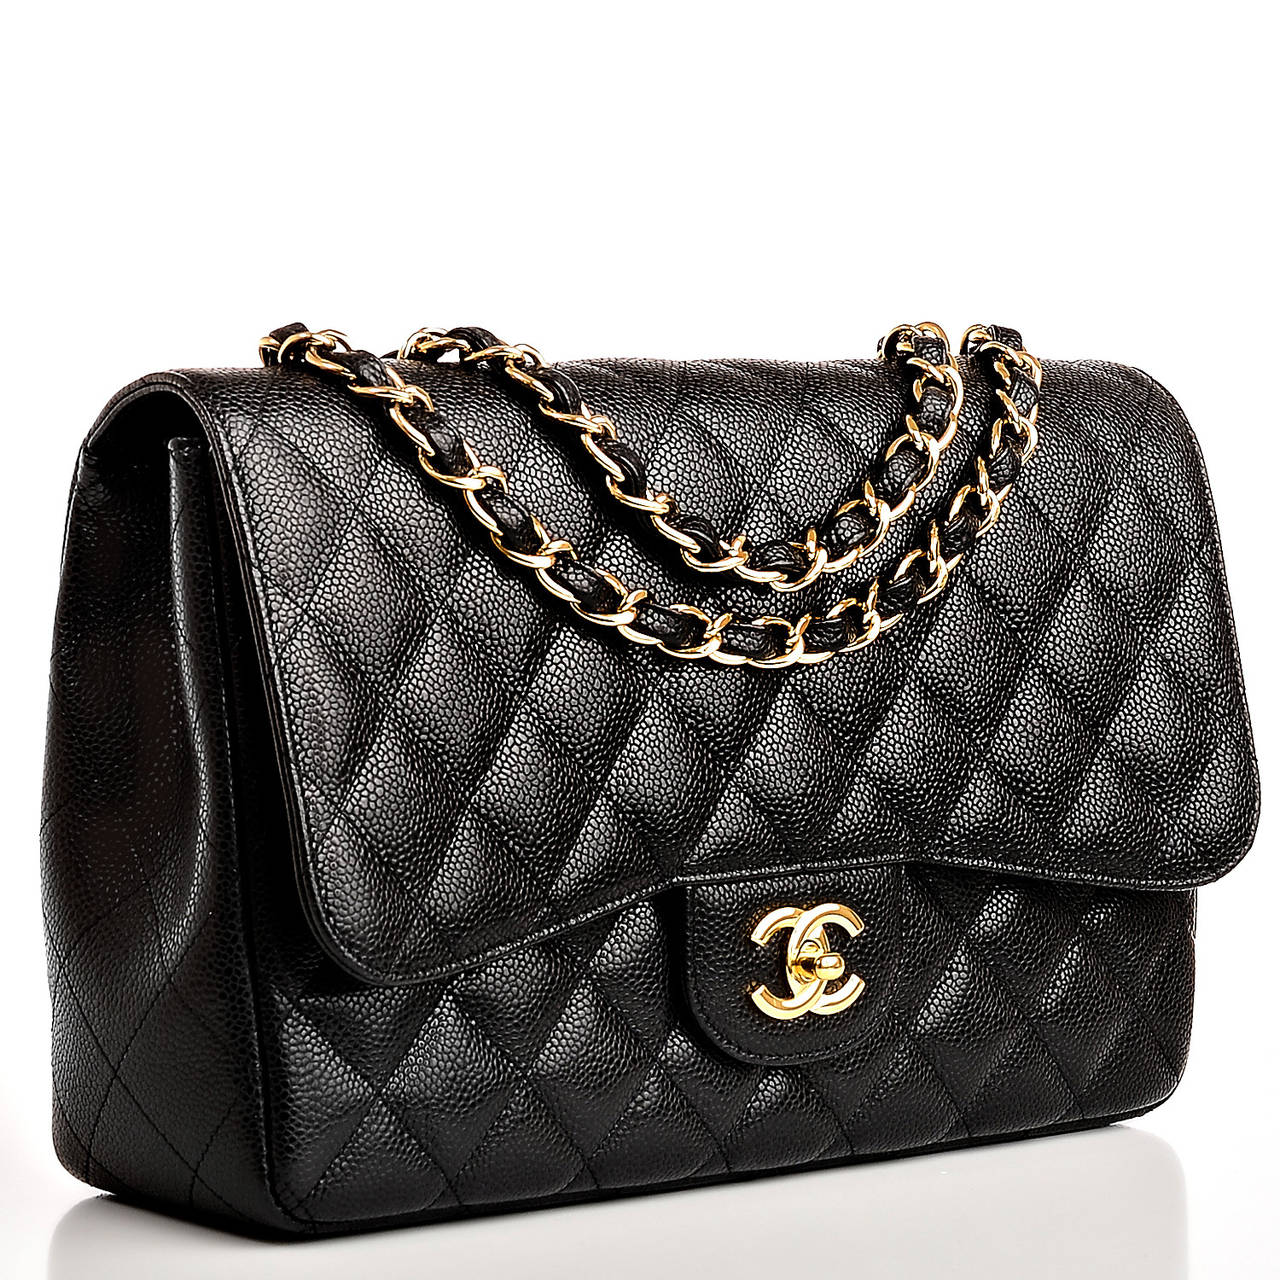 Chanel Black Quilted Caviar Jumbo Classic Flap Bag Gold Hardware At 1stdibs